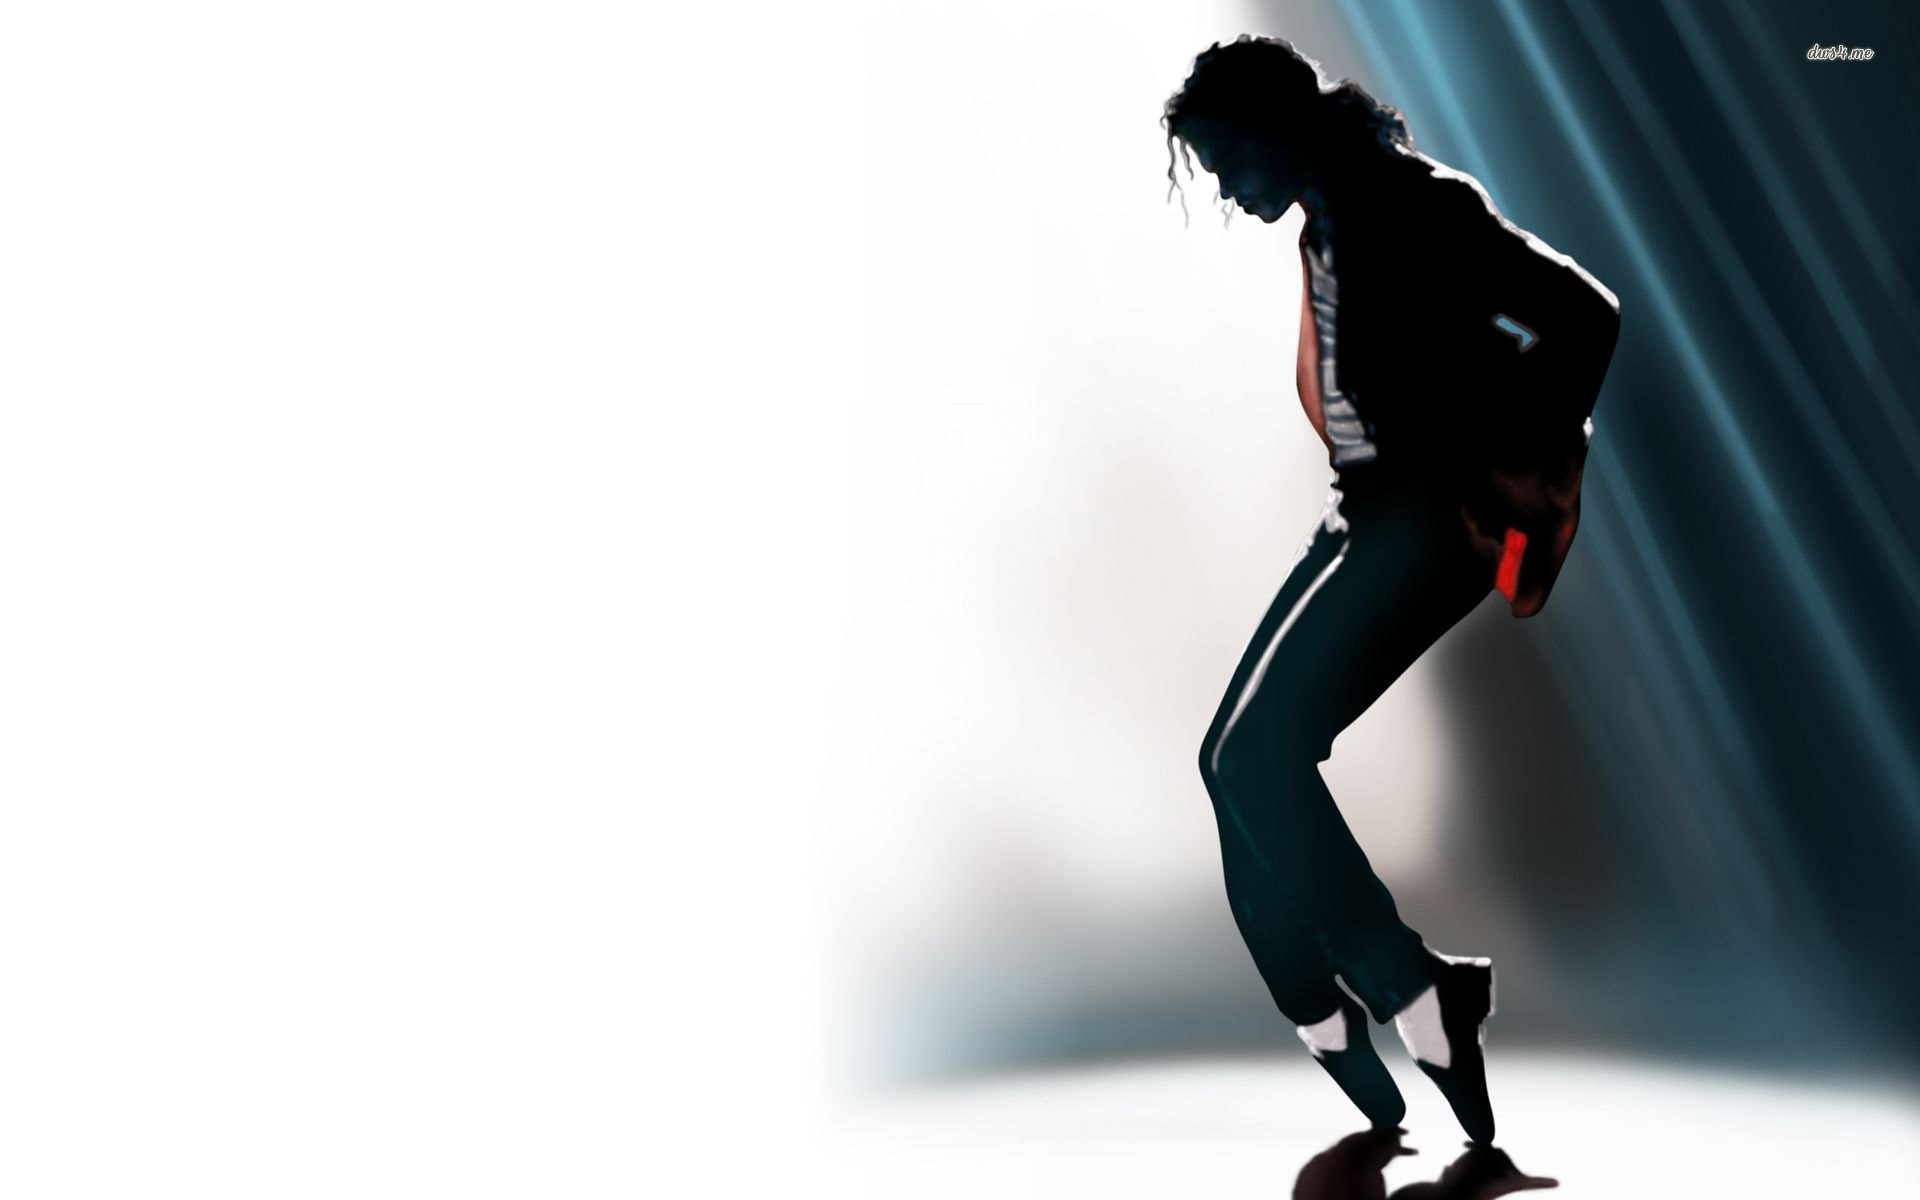 michael jackson images wallpapers - photo #14